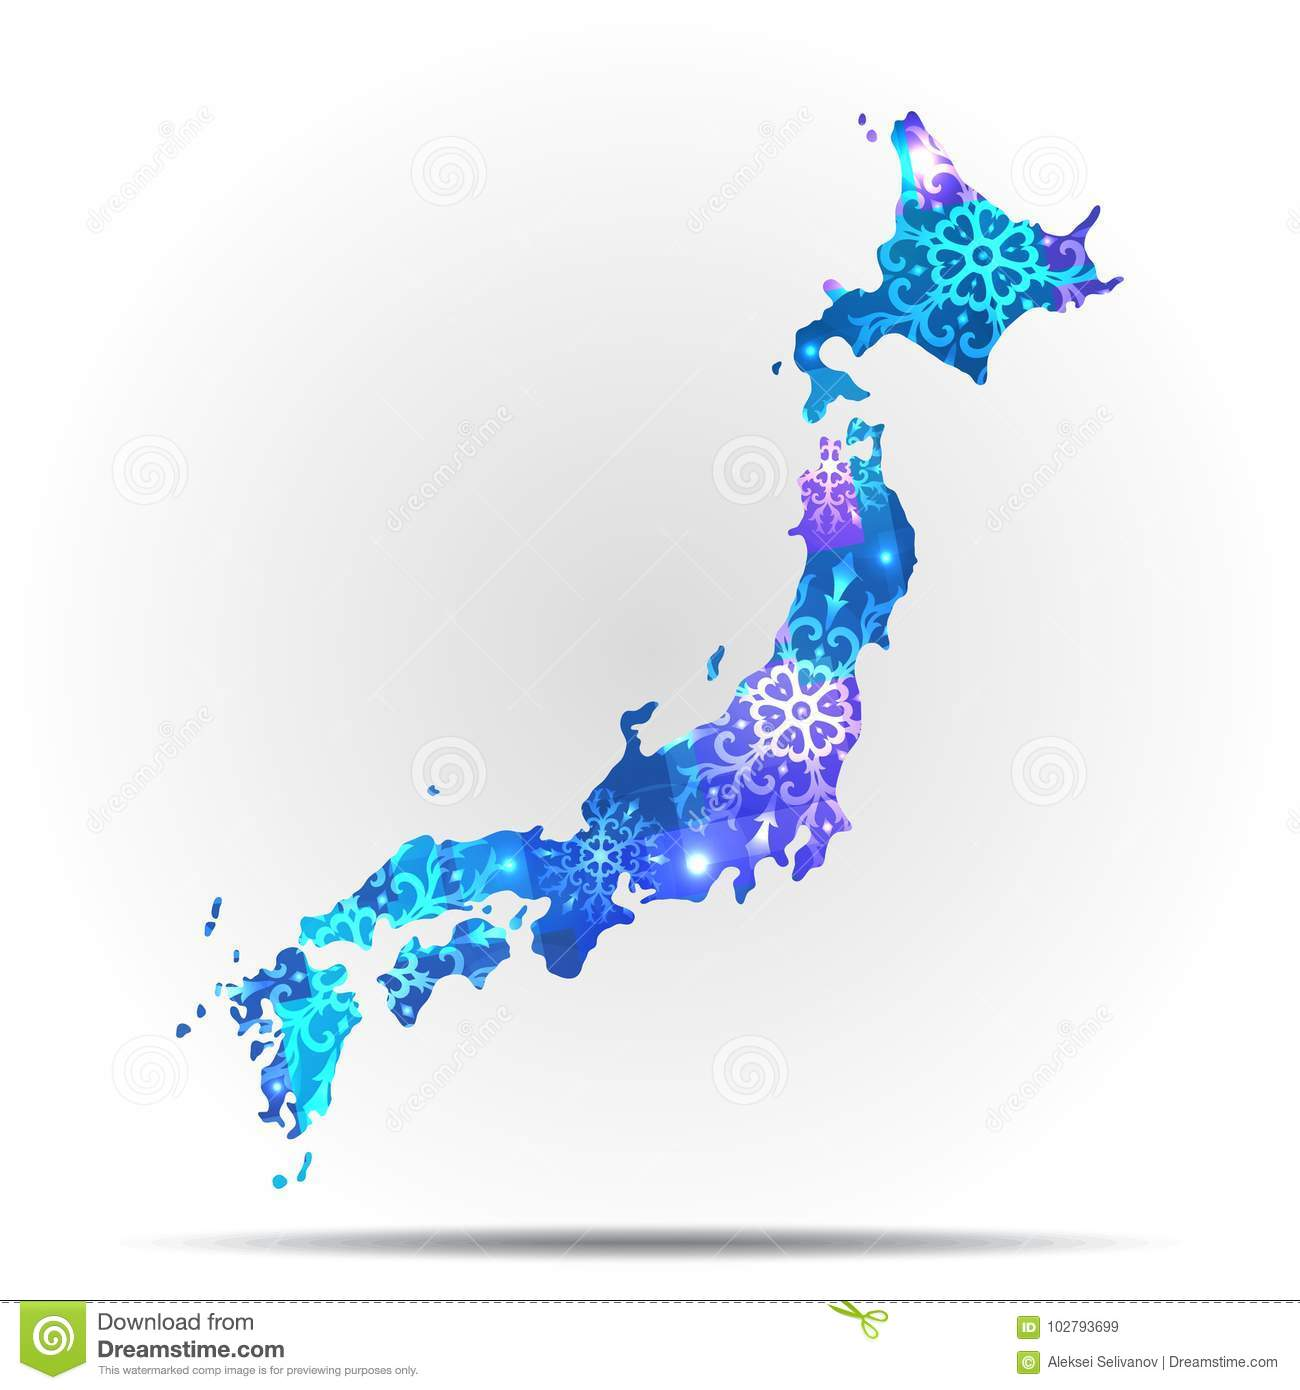 Vector map Japan with snowflakes. Winter illustration for your design.